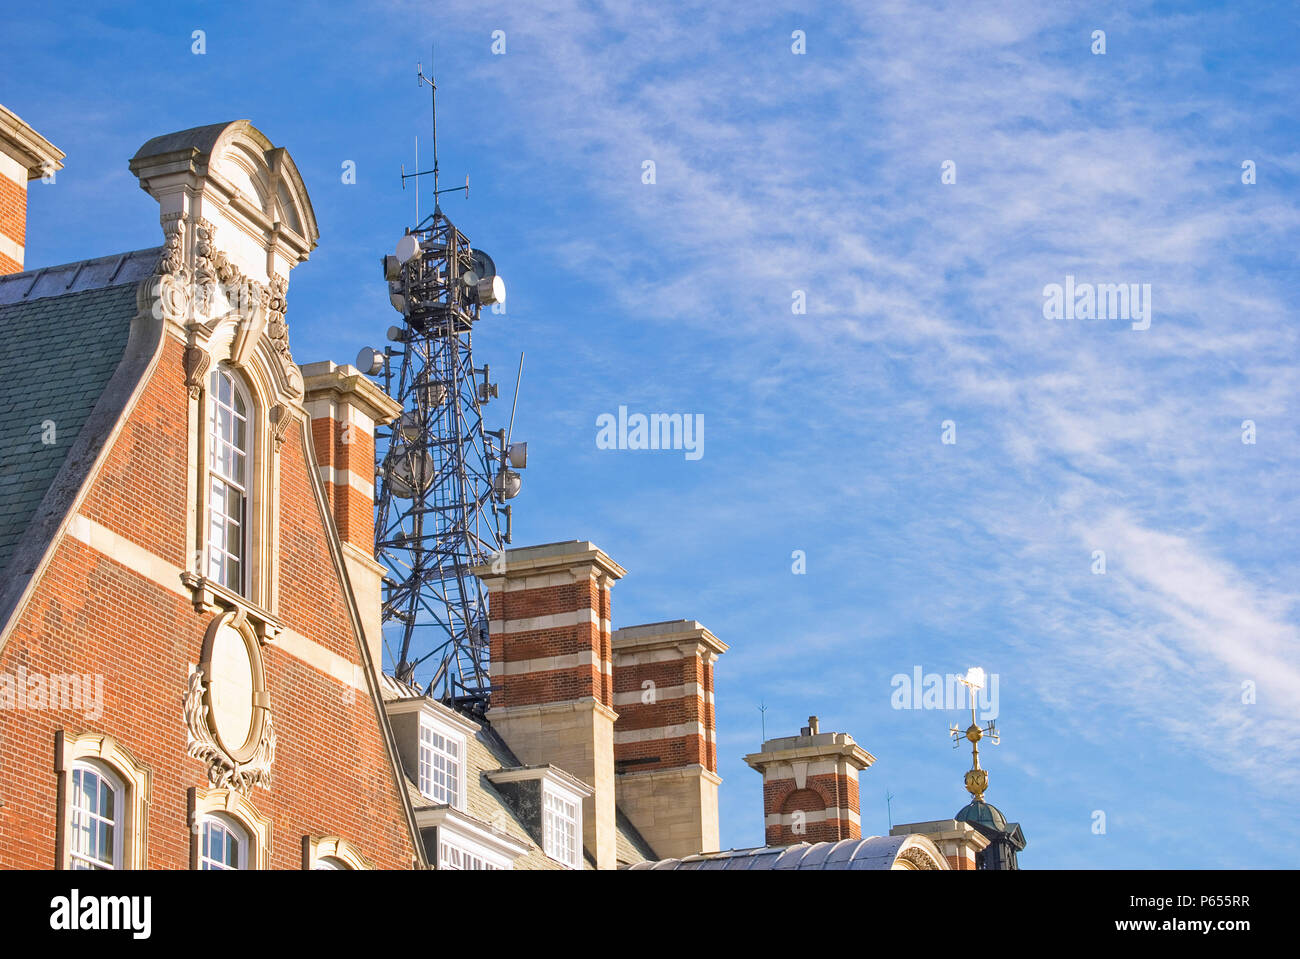 Communications tower atop building, York, United Kingdom - Stock Image